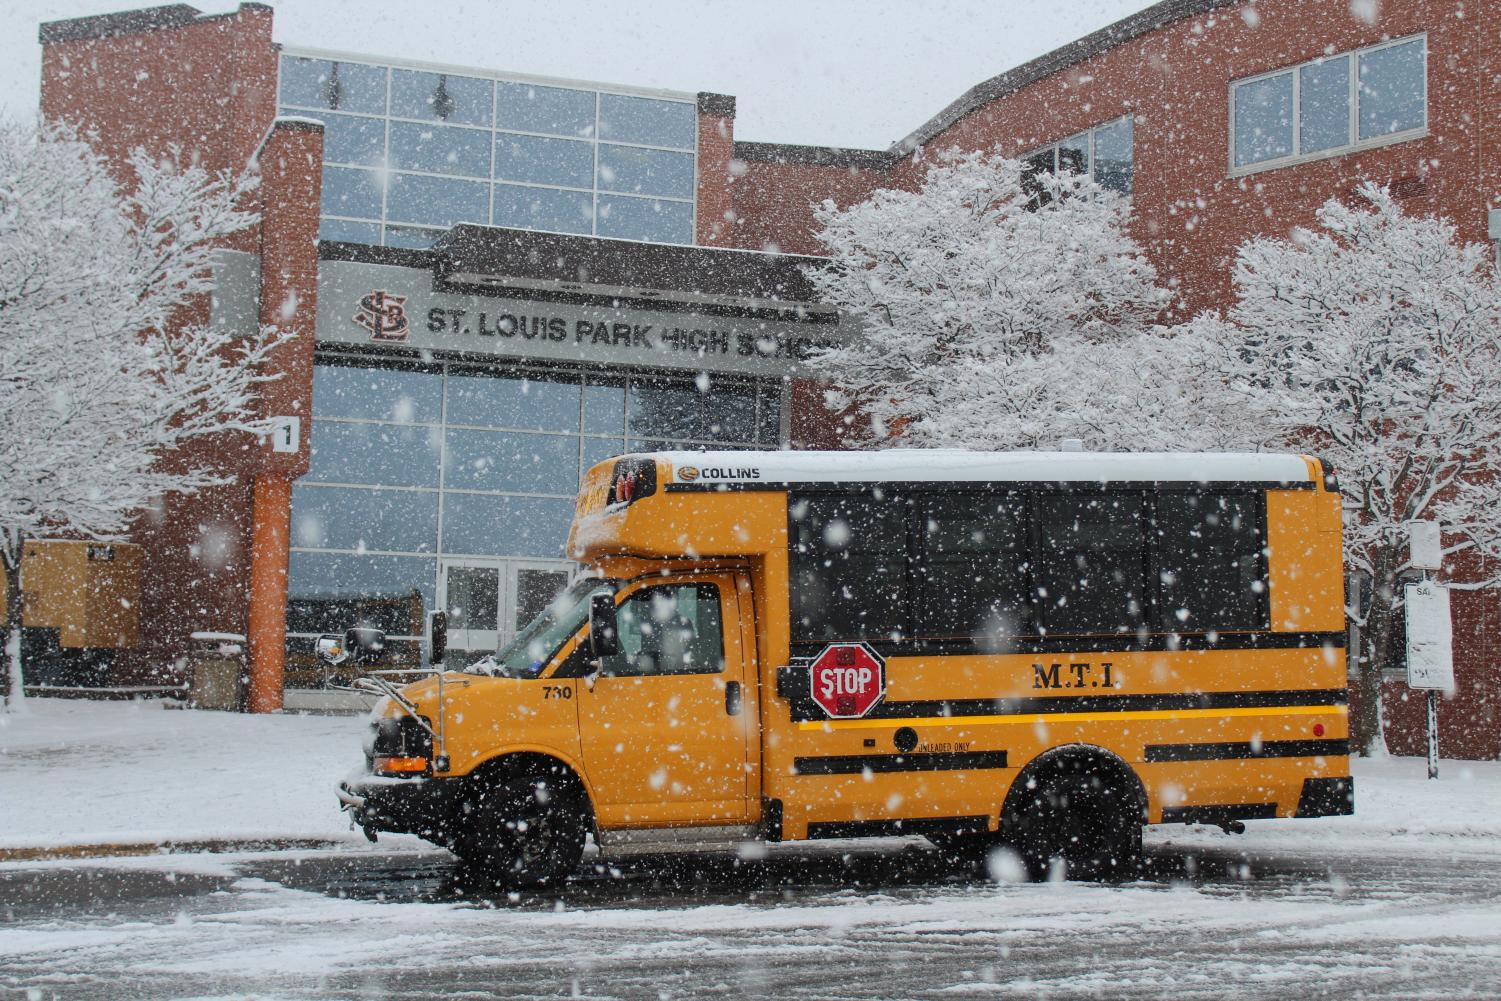 Snow falls April 10 outside Park. According to district communications director Sara Thompson, all St. Louis Park Public Schools are closed April 10.